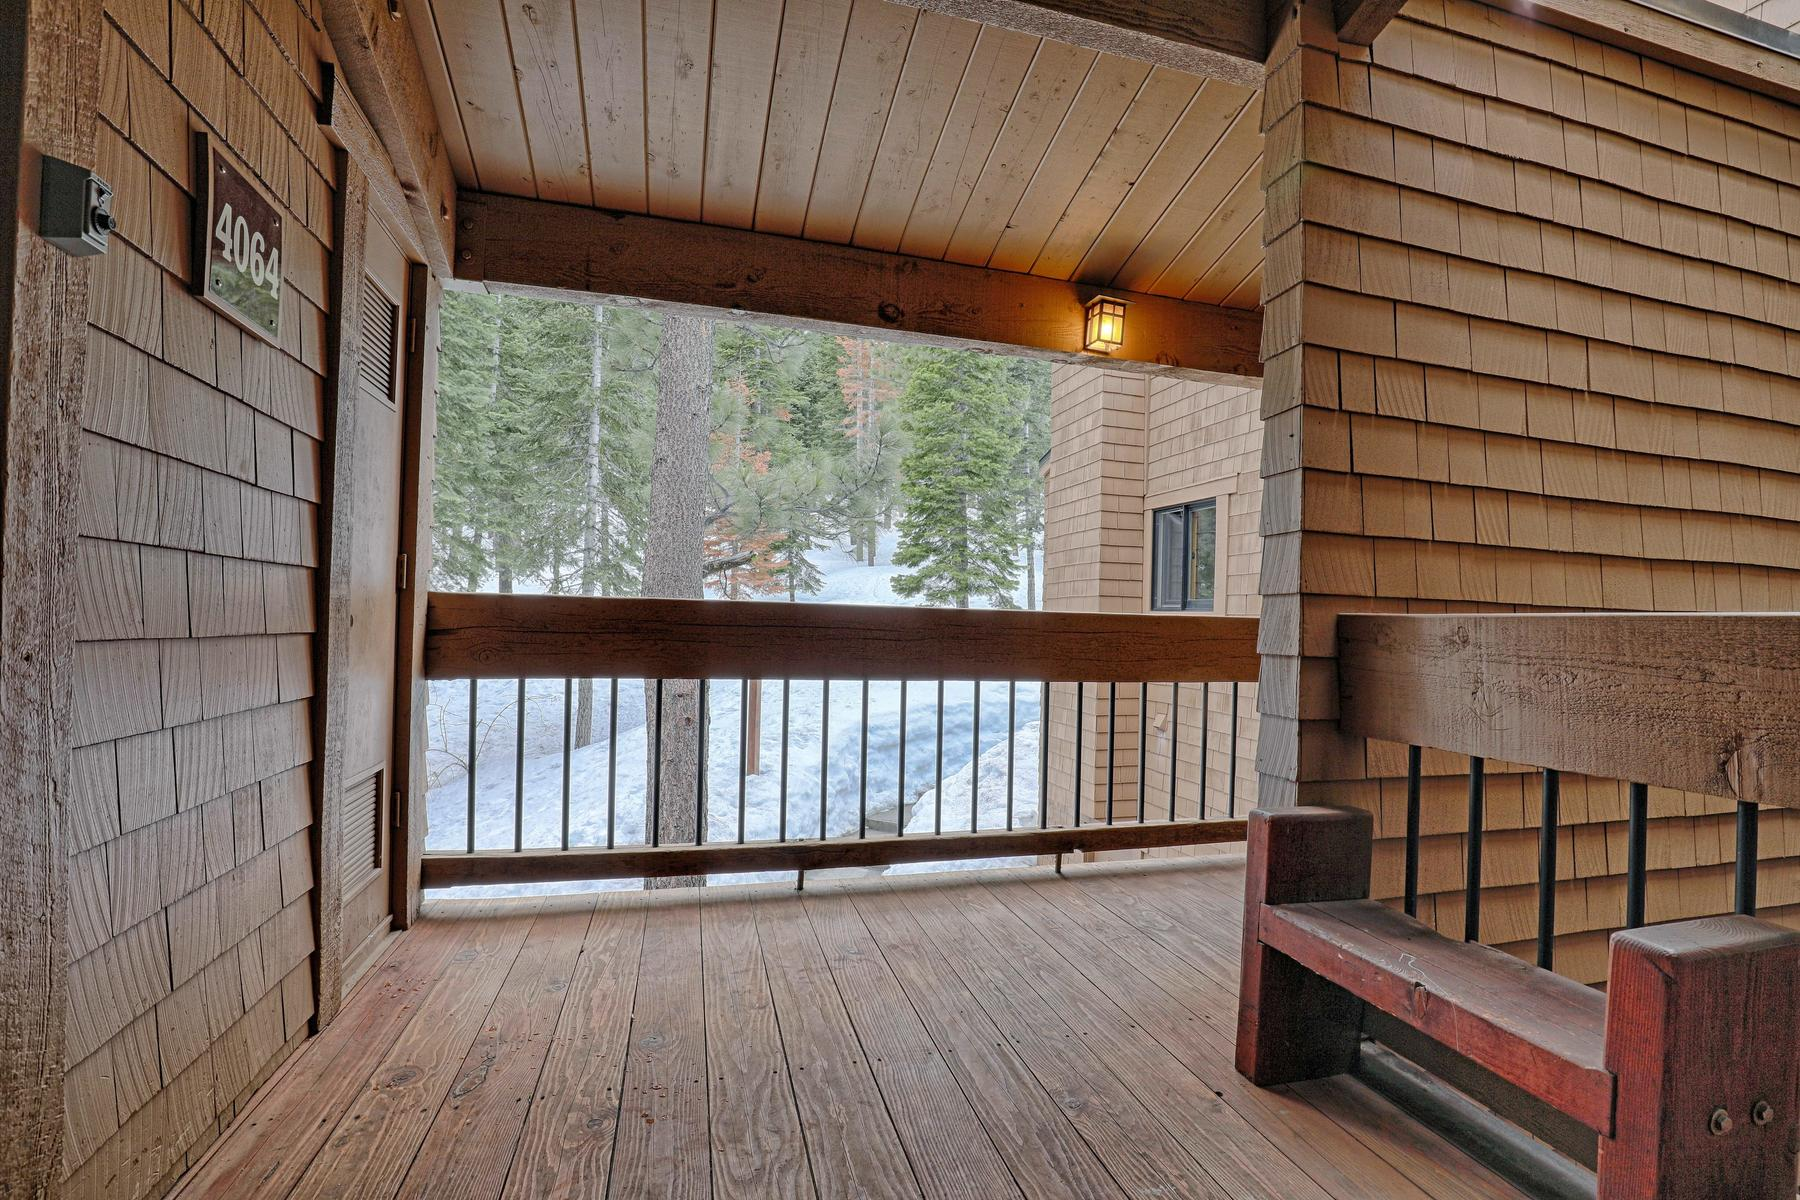 Additional photo for property listing at 4062 Coyote Fork #4, Truckee, CA 96161 4062 Coyote Fork #4 Truckee, California 96161 United States